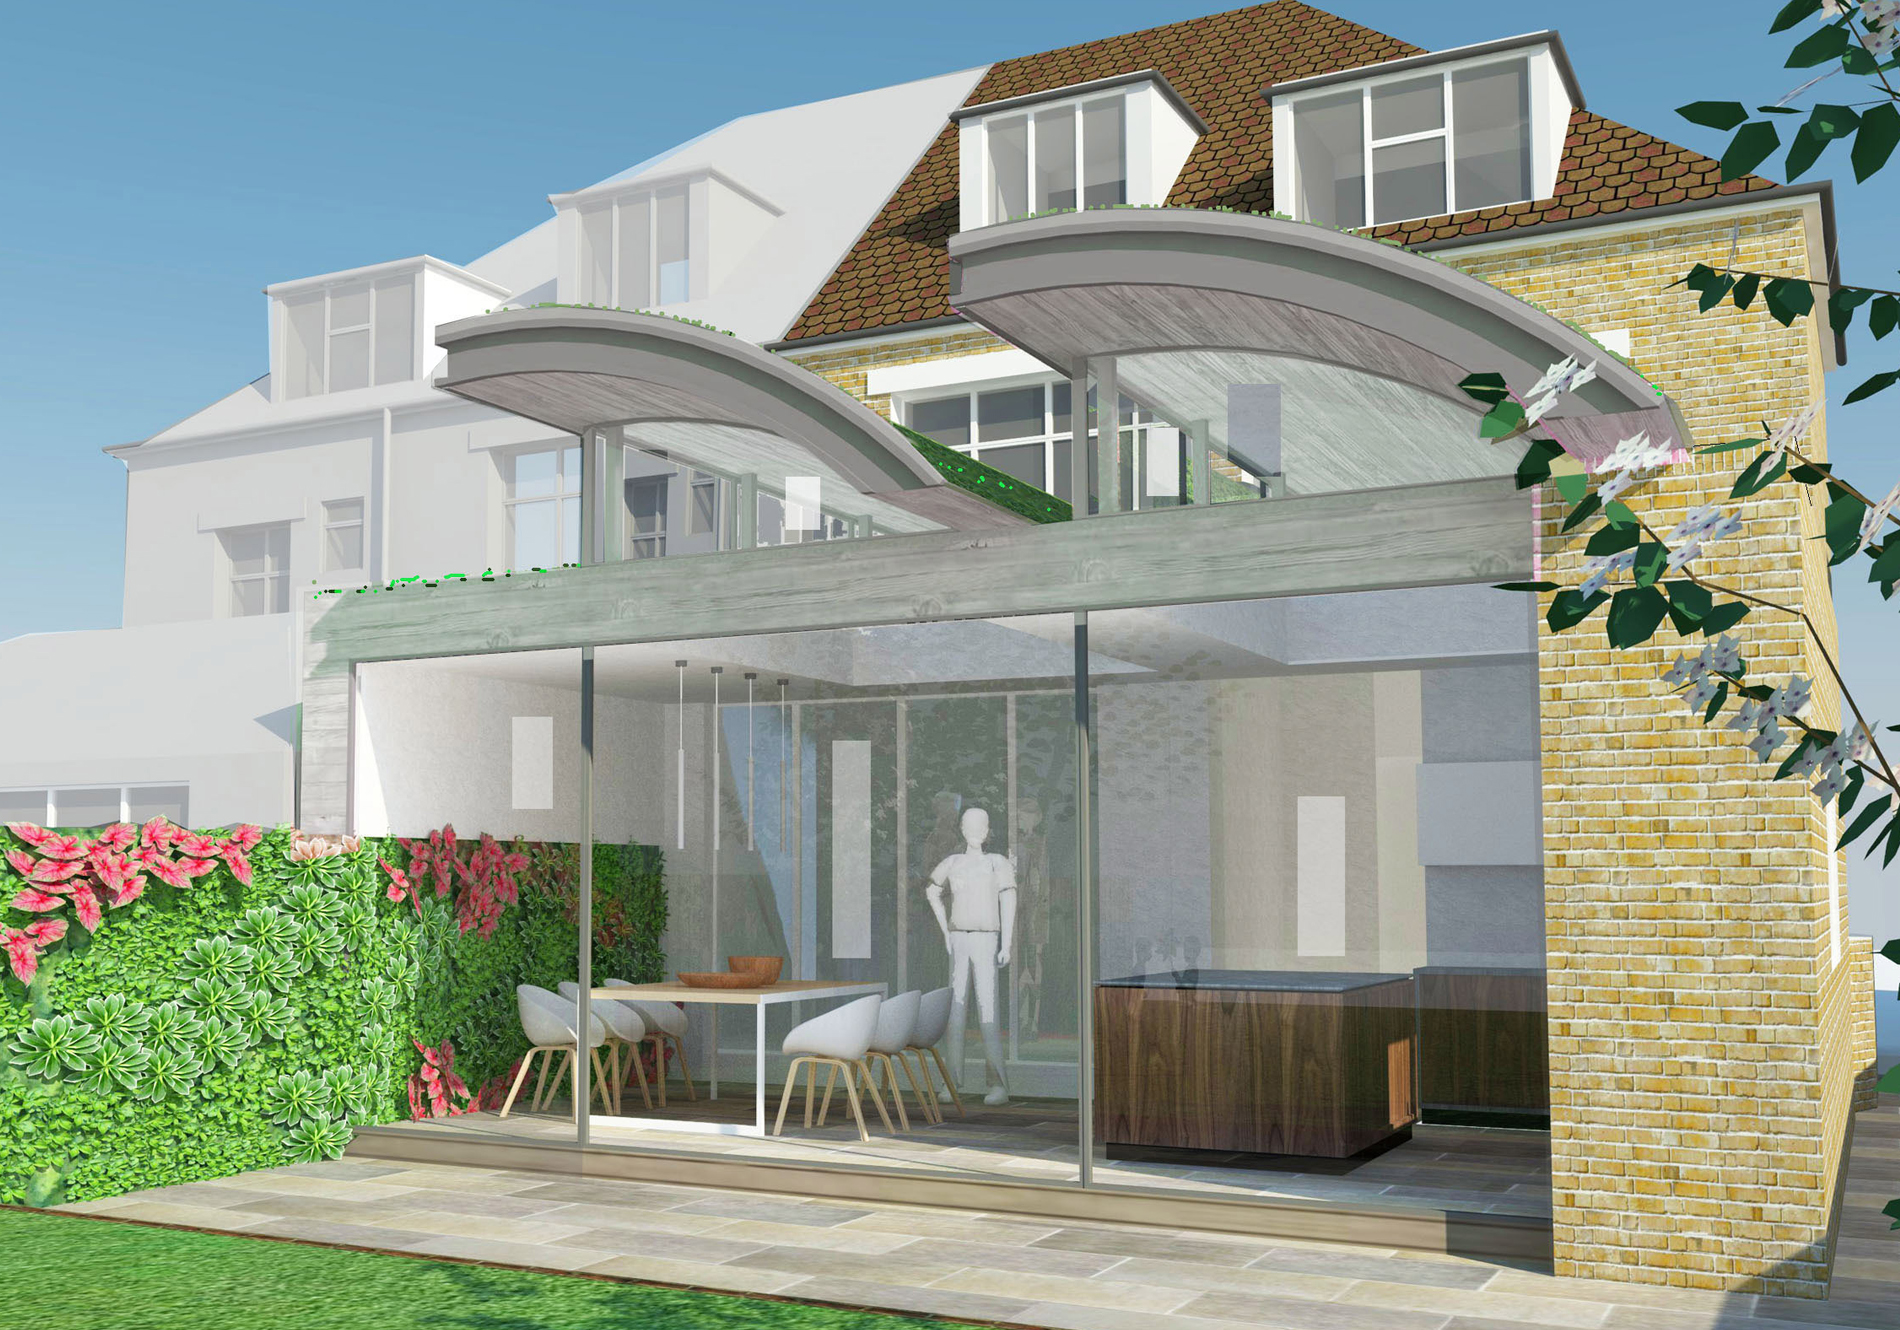 proposed design of new rear extension at Herondale Avenue by One World Design